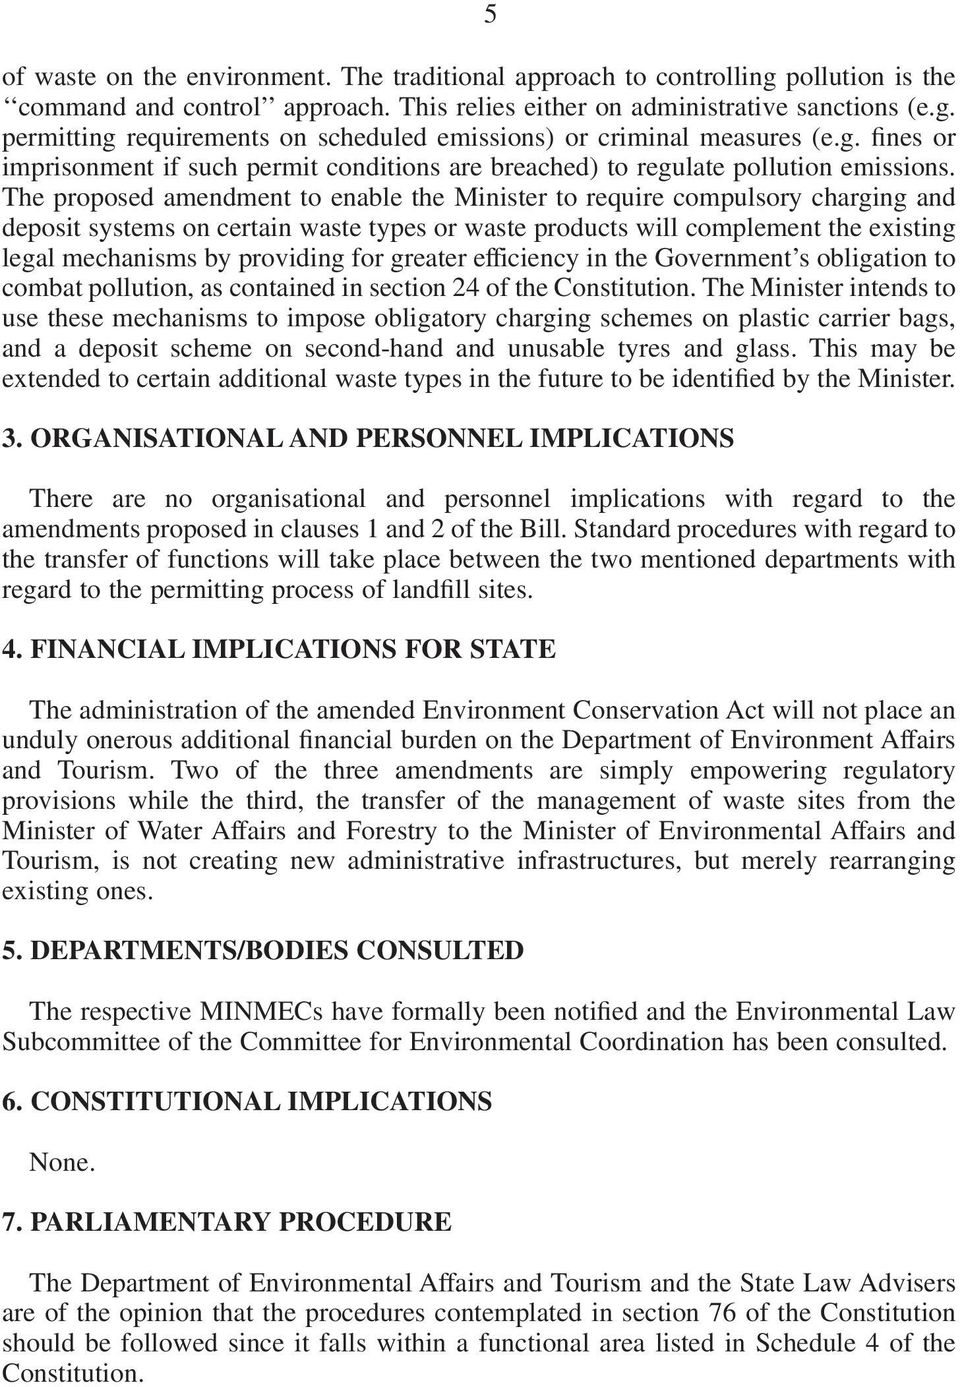 The proposed amendment to enable the Minister to require compulsory charging and deposit systems on certain waste types or waste products will complement the existing legal mechanisms by providing